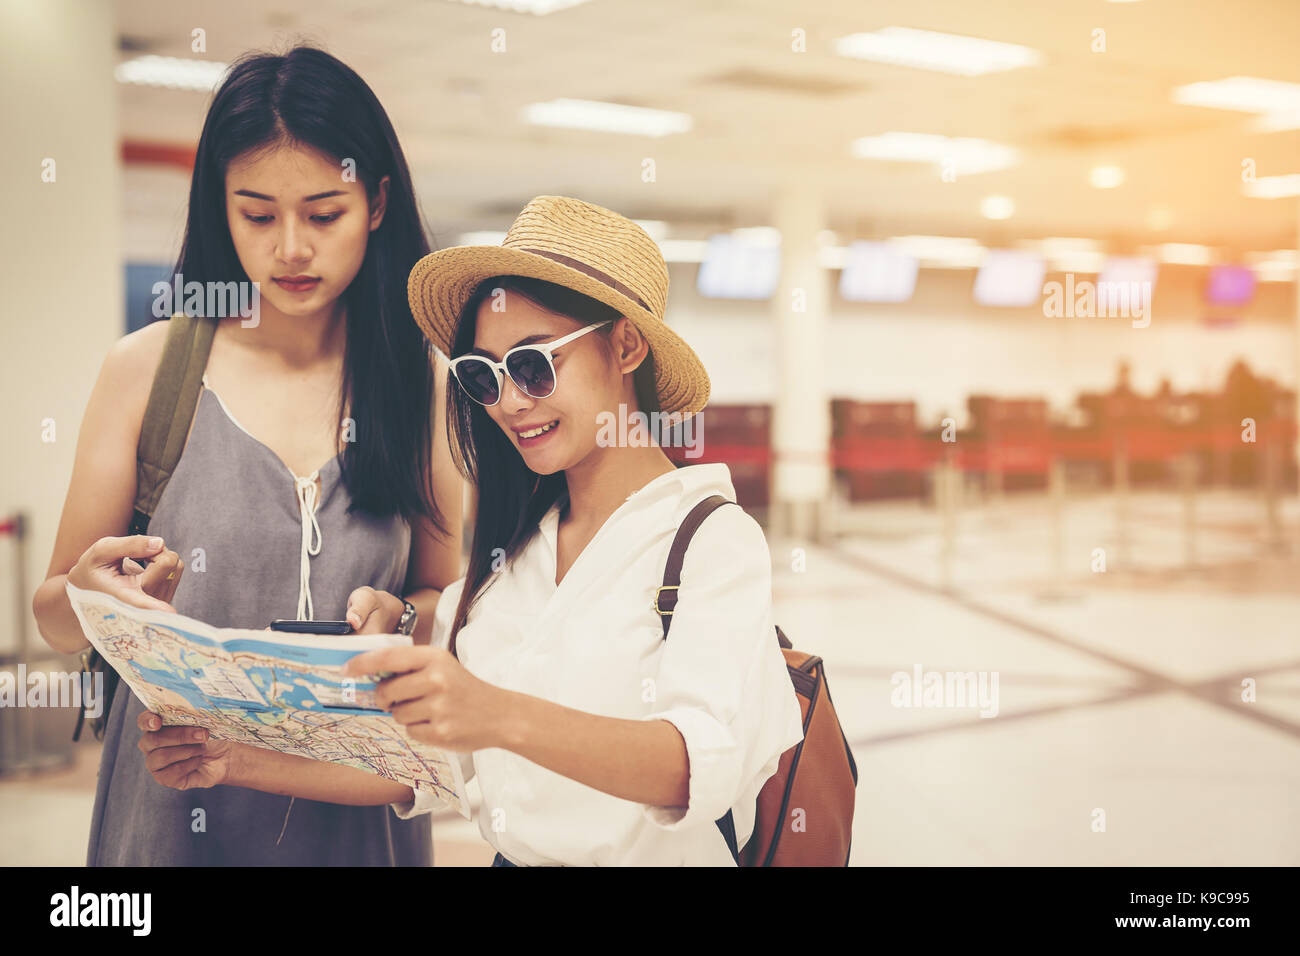 Happy women tourist on map to  the airport vacation.Travel concept. - Stock Image